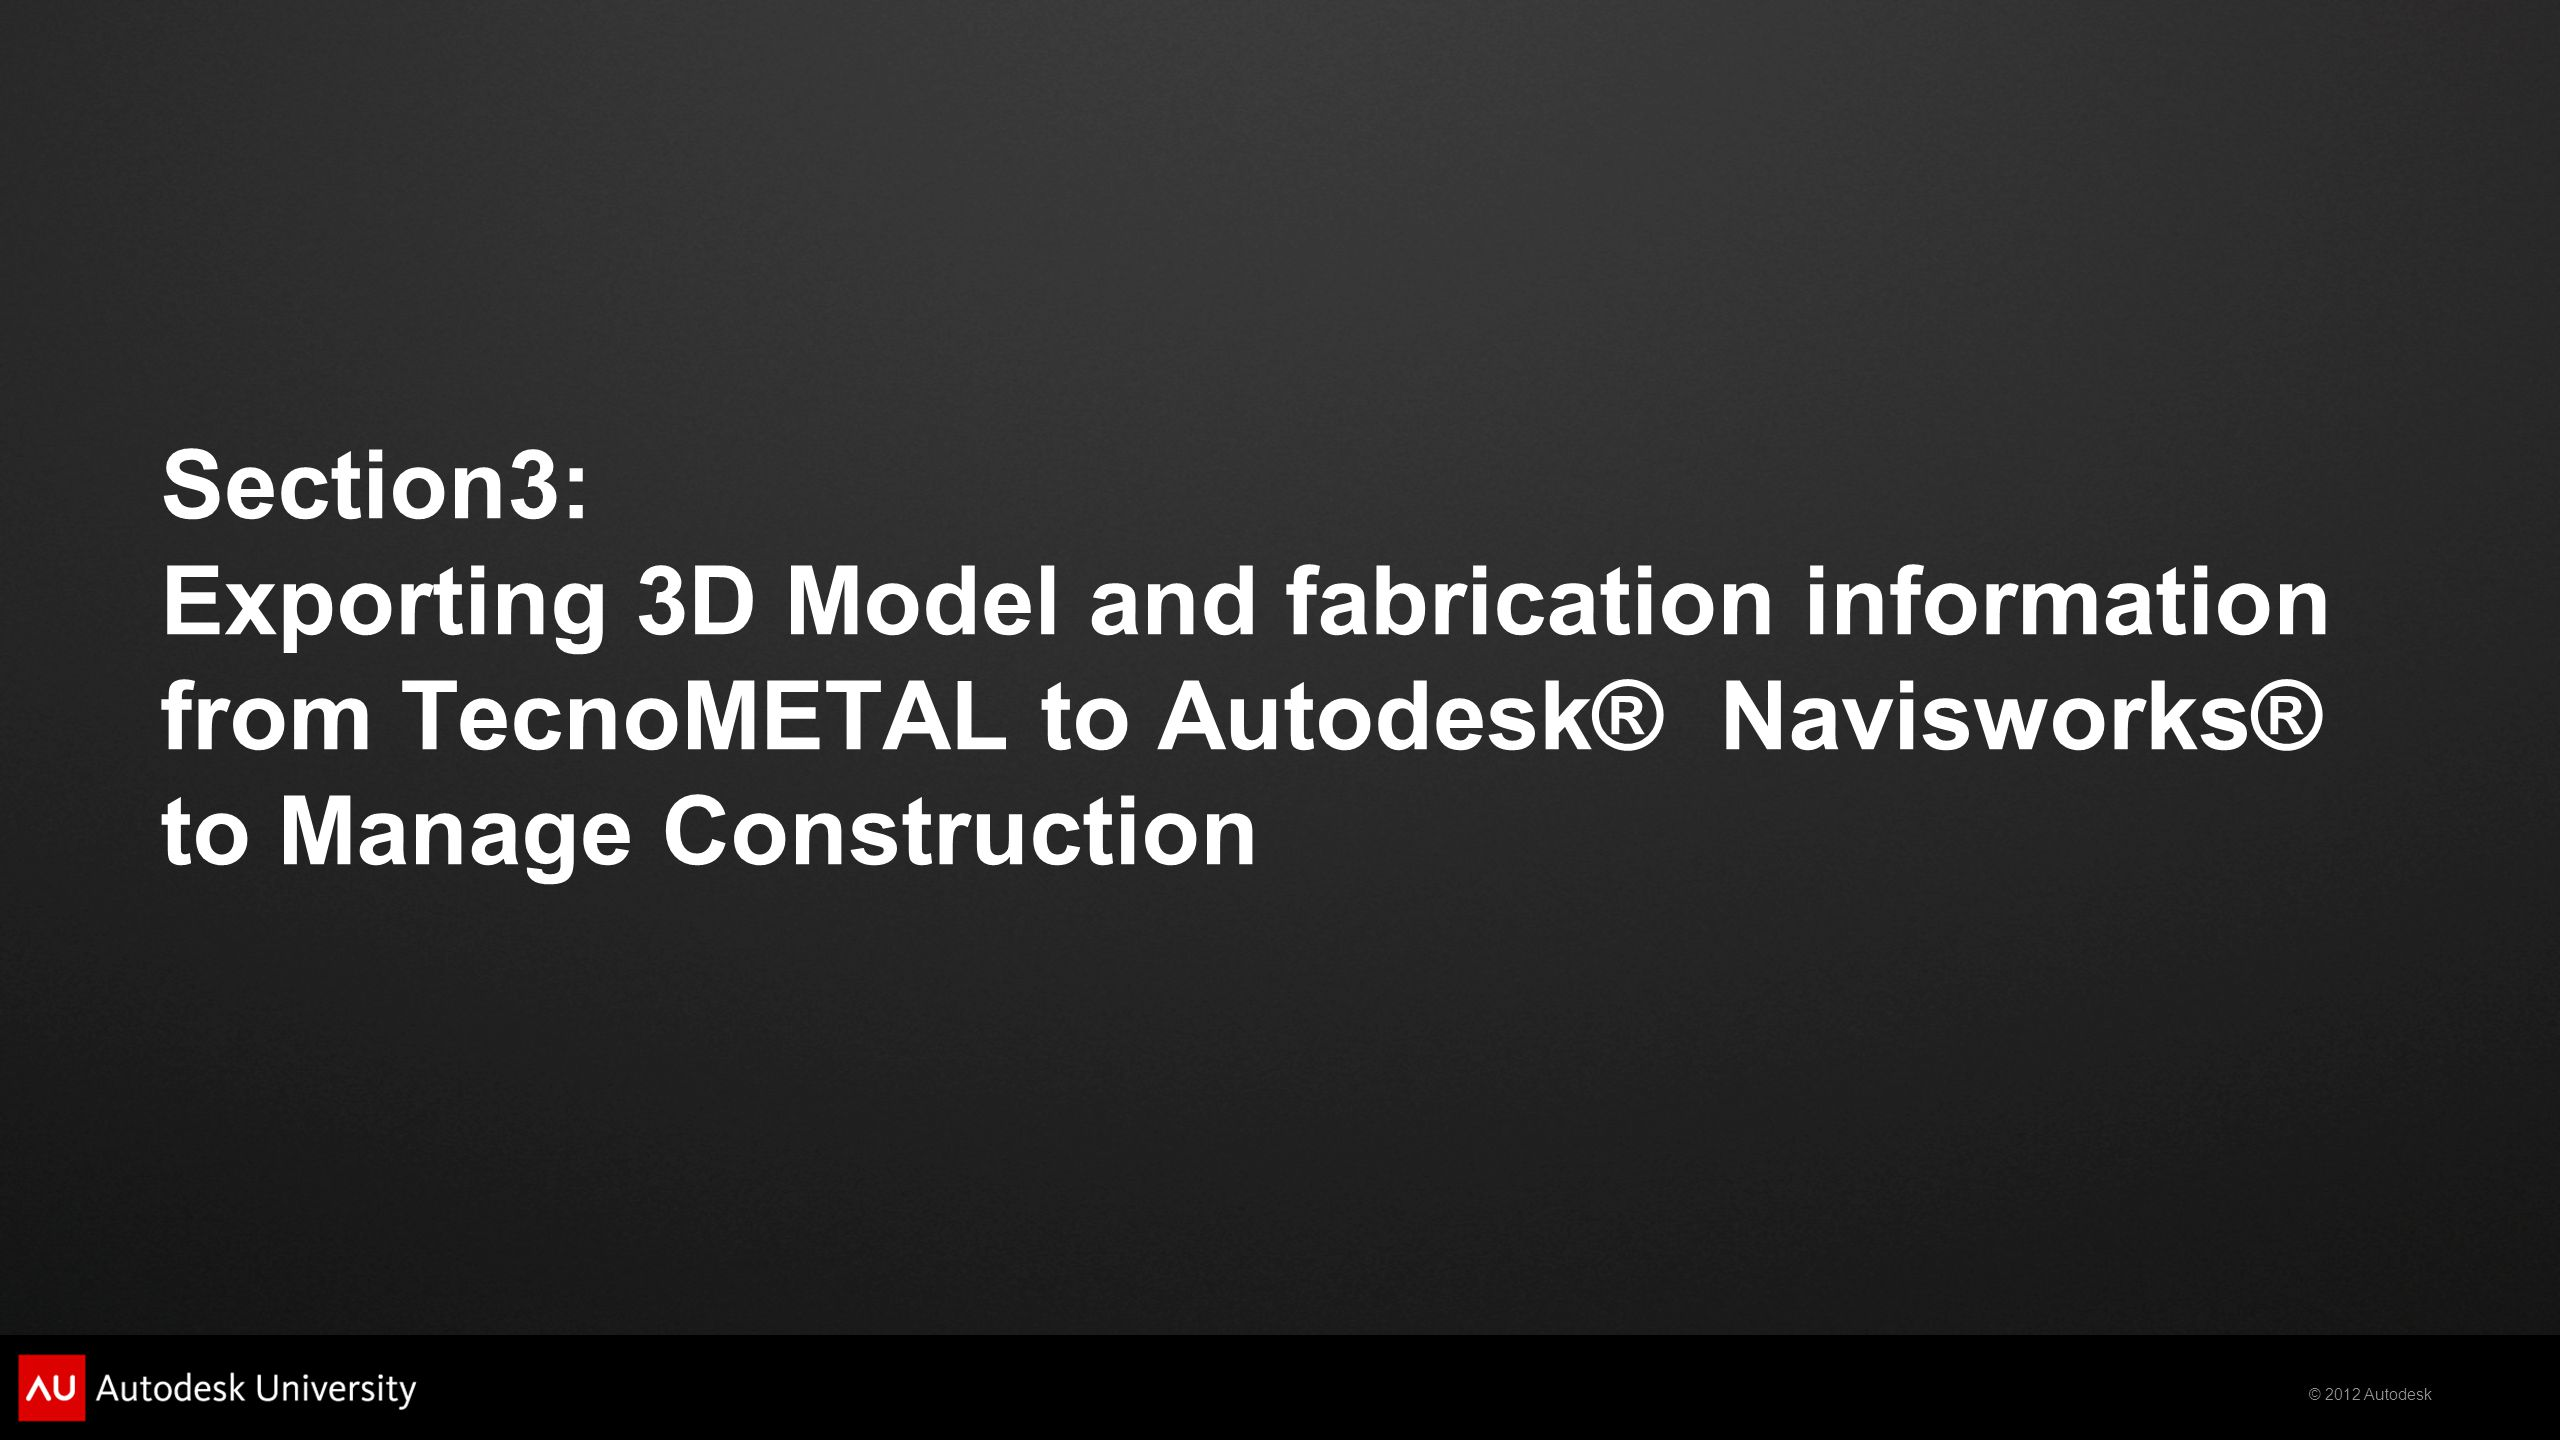 Section3: Exporting 3D Model and fabrication information from TecnoMETAL to Autodesk® Navisworks® to Manage Construction